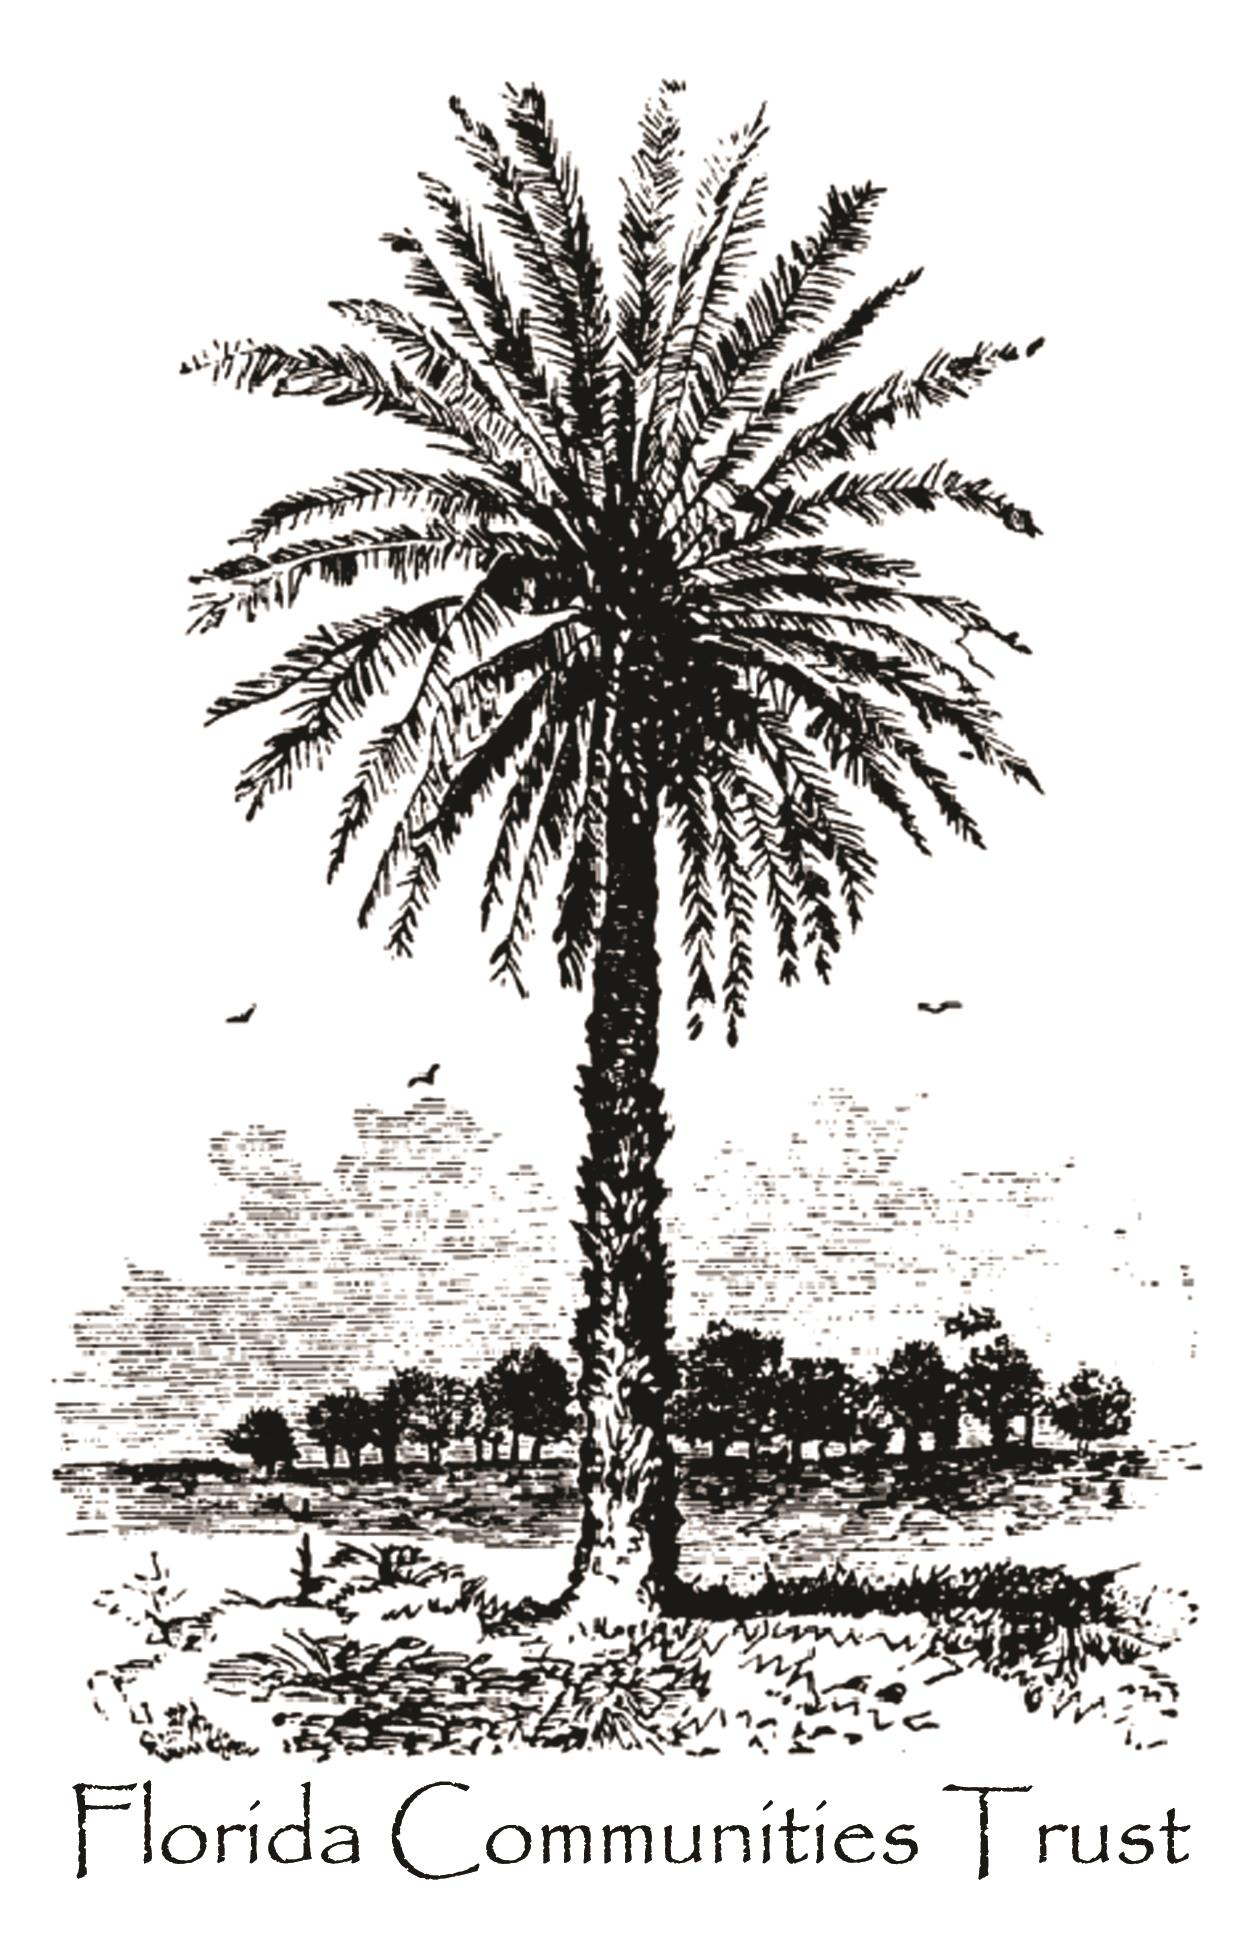 Florida Communities Trust logo with palm tree in foreground and group of trees in background